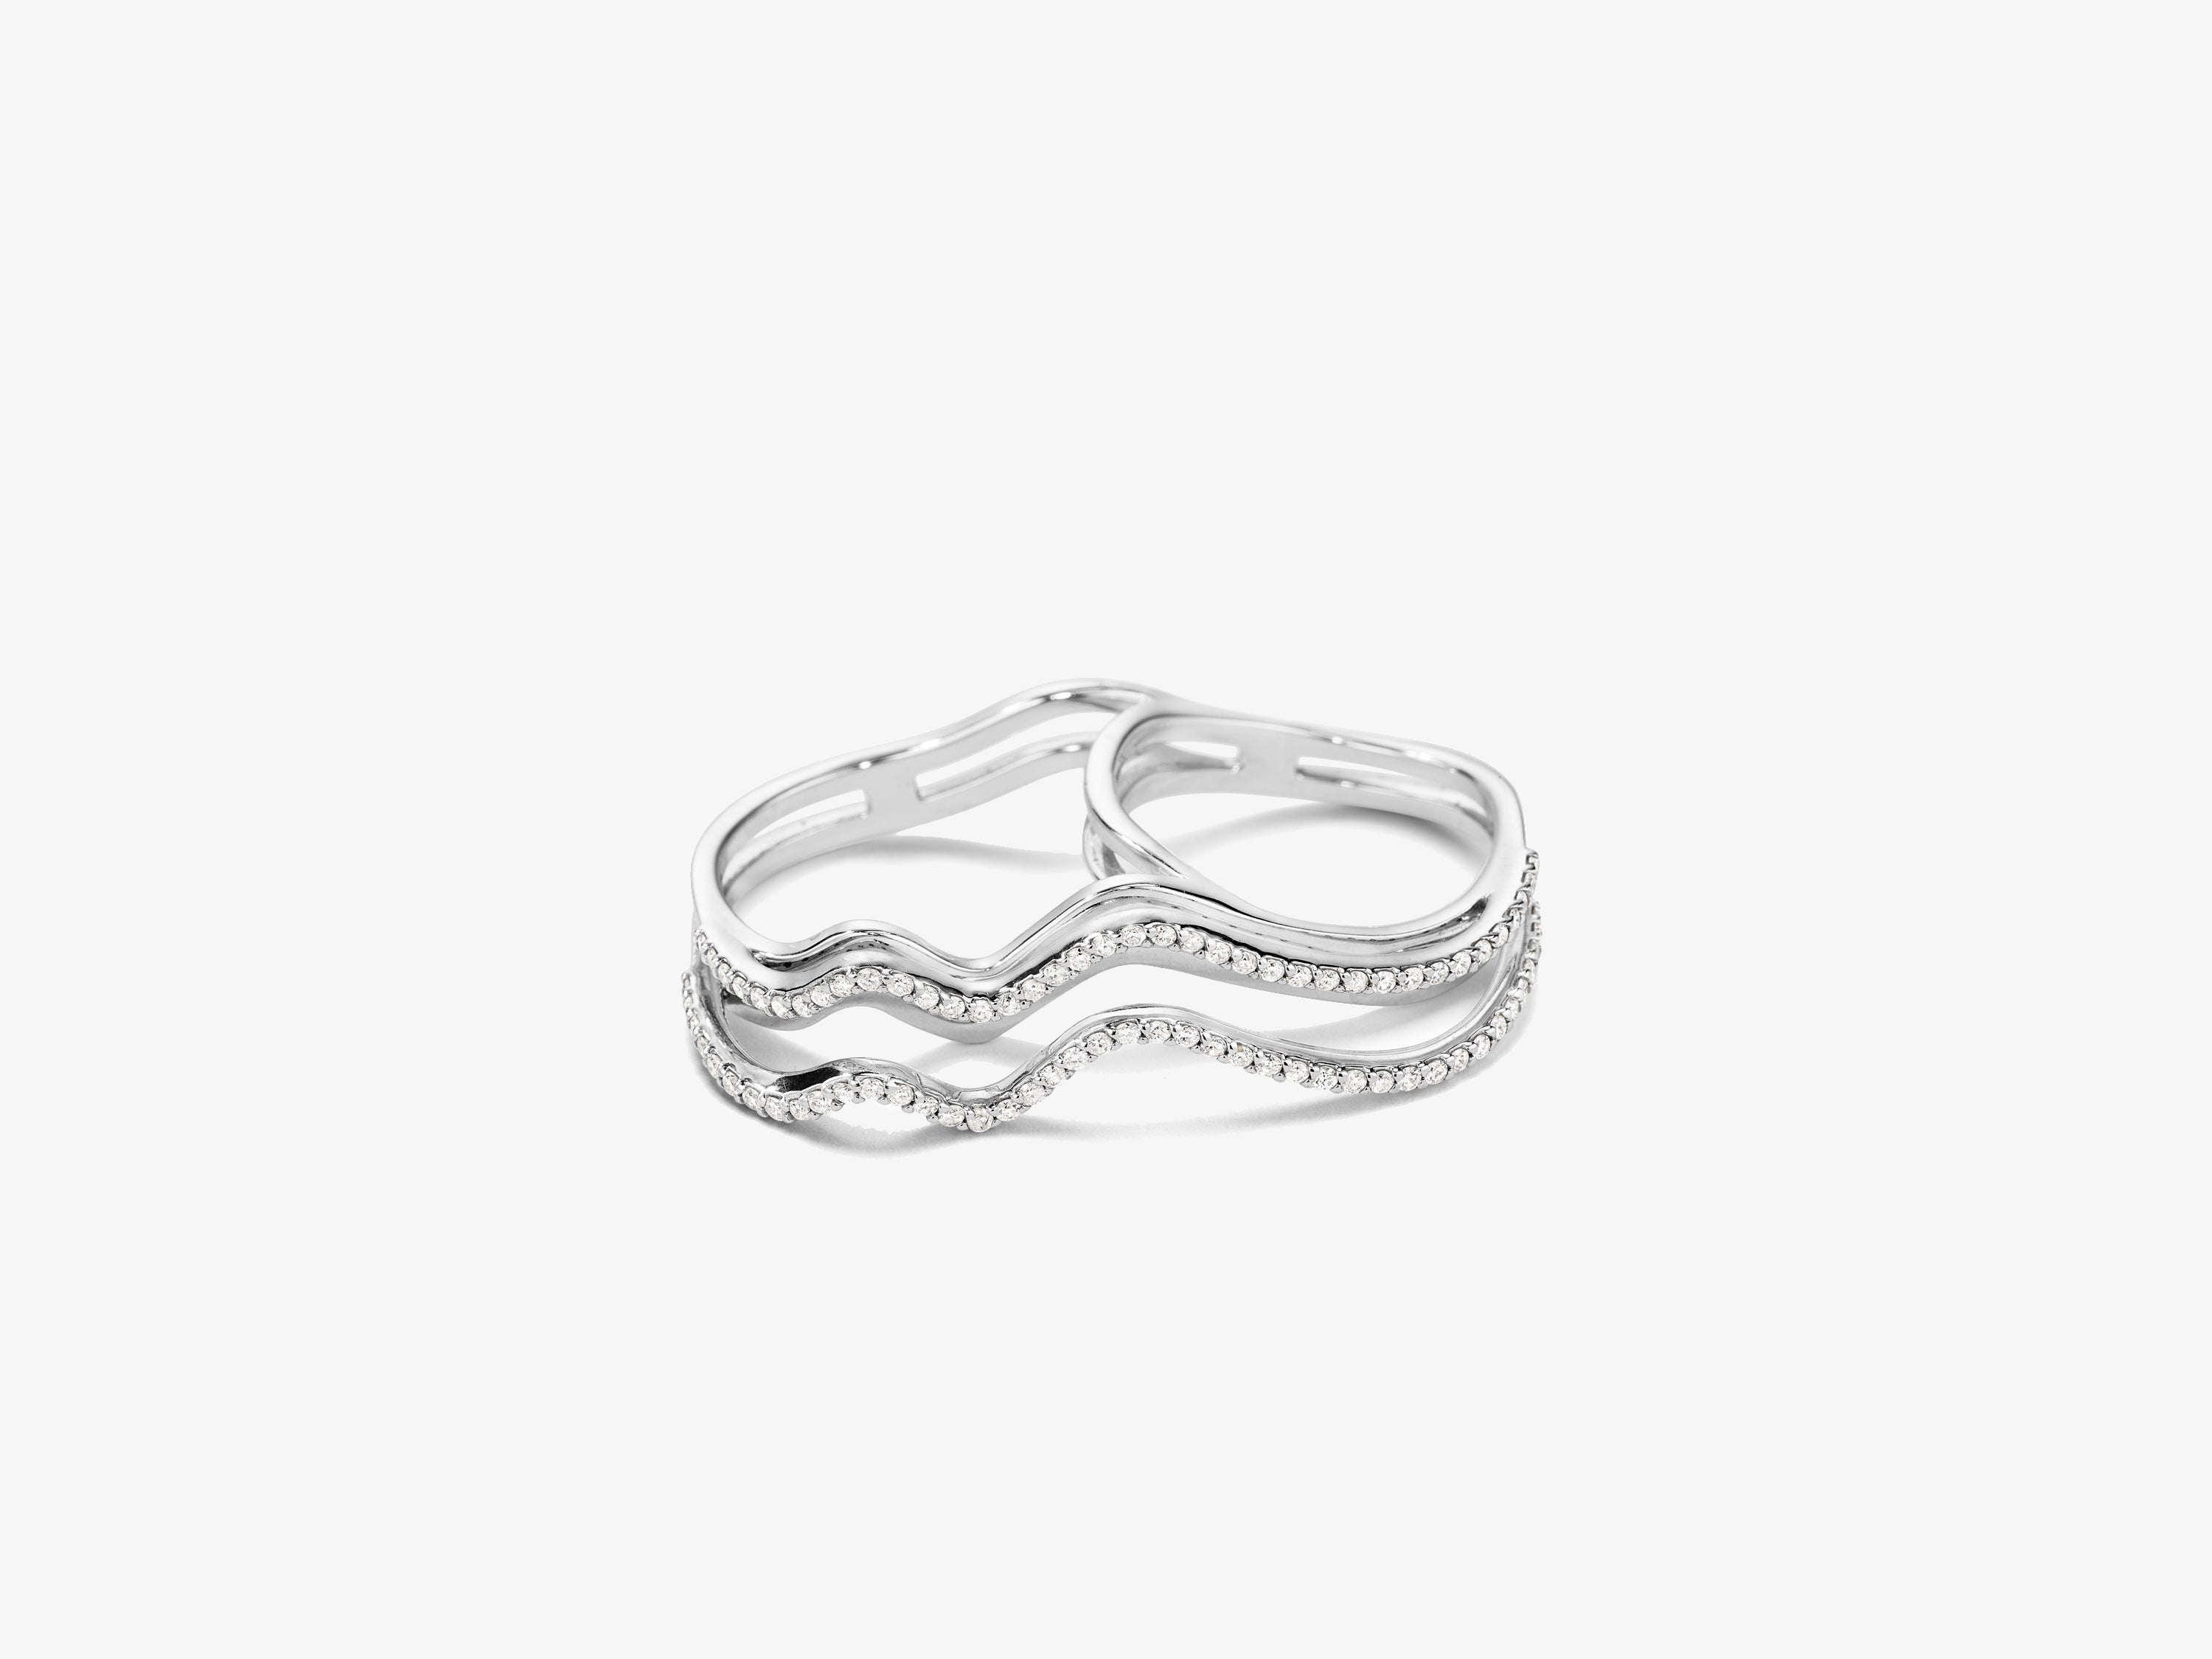 Flow Wavy Three Dimensional Double Finger Ring with Full Diamond Pave